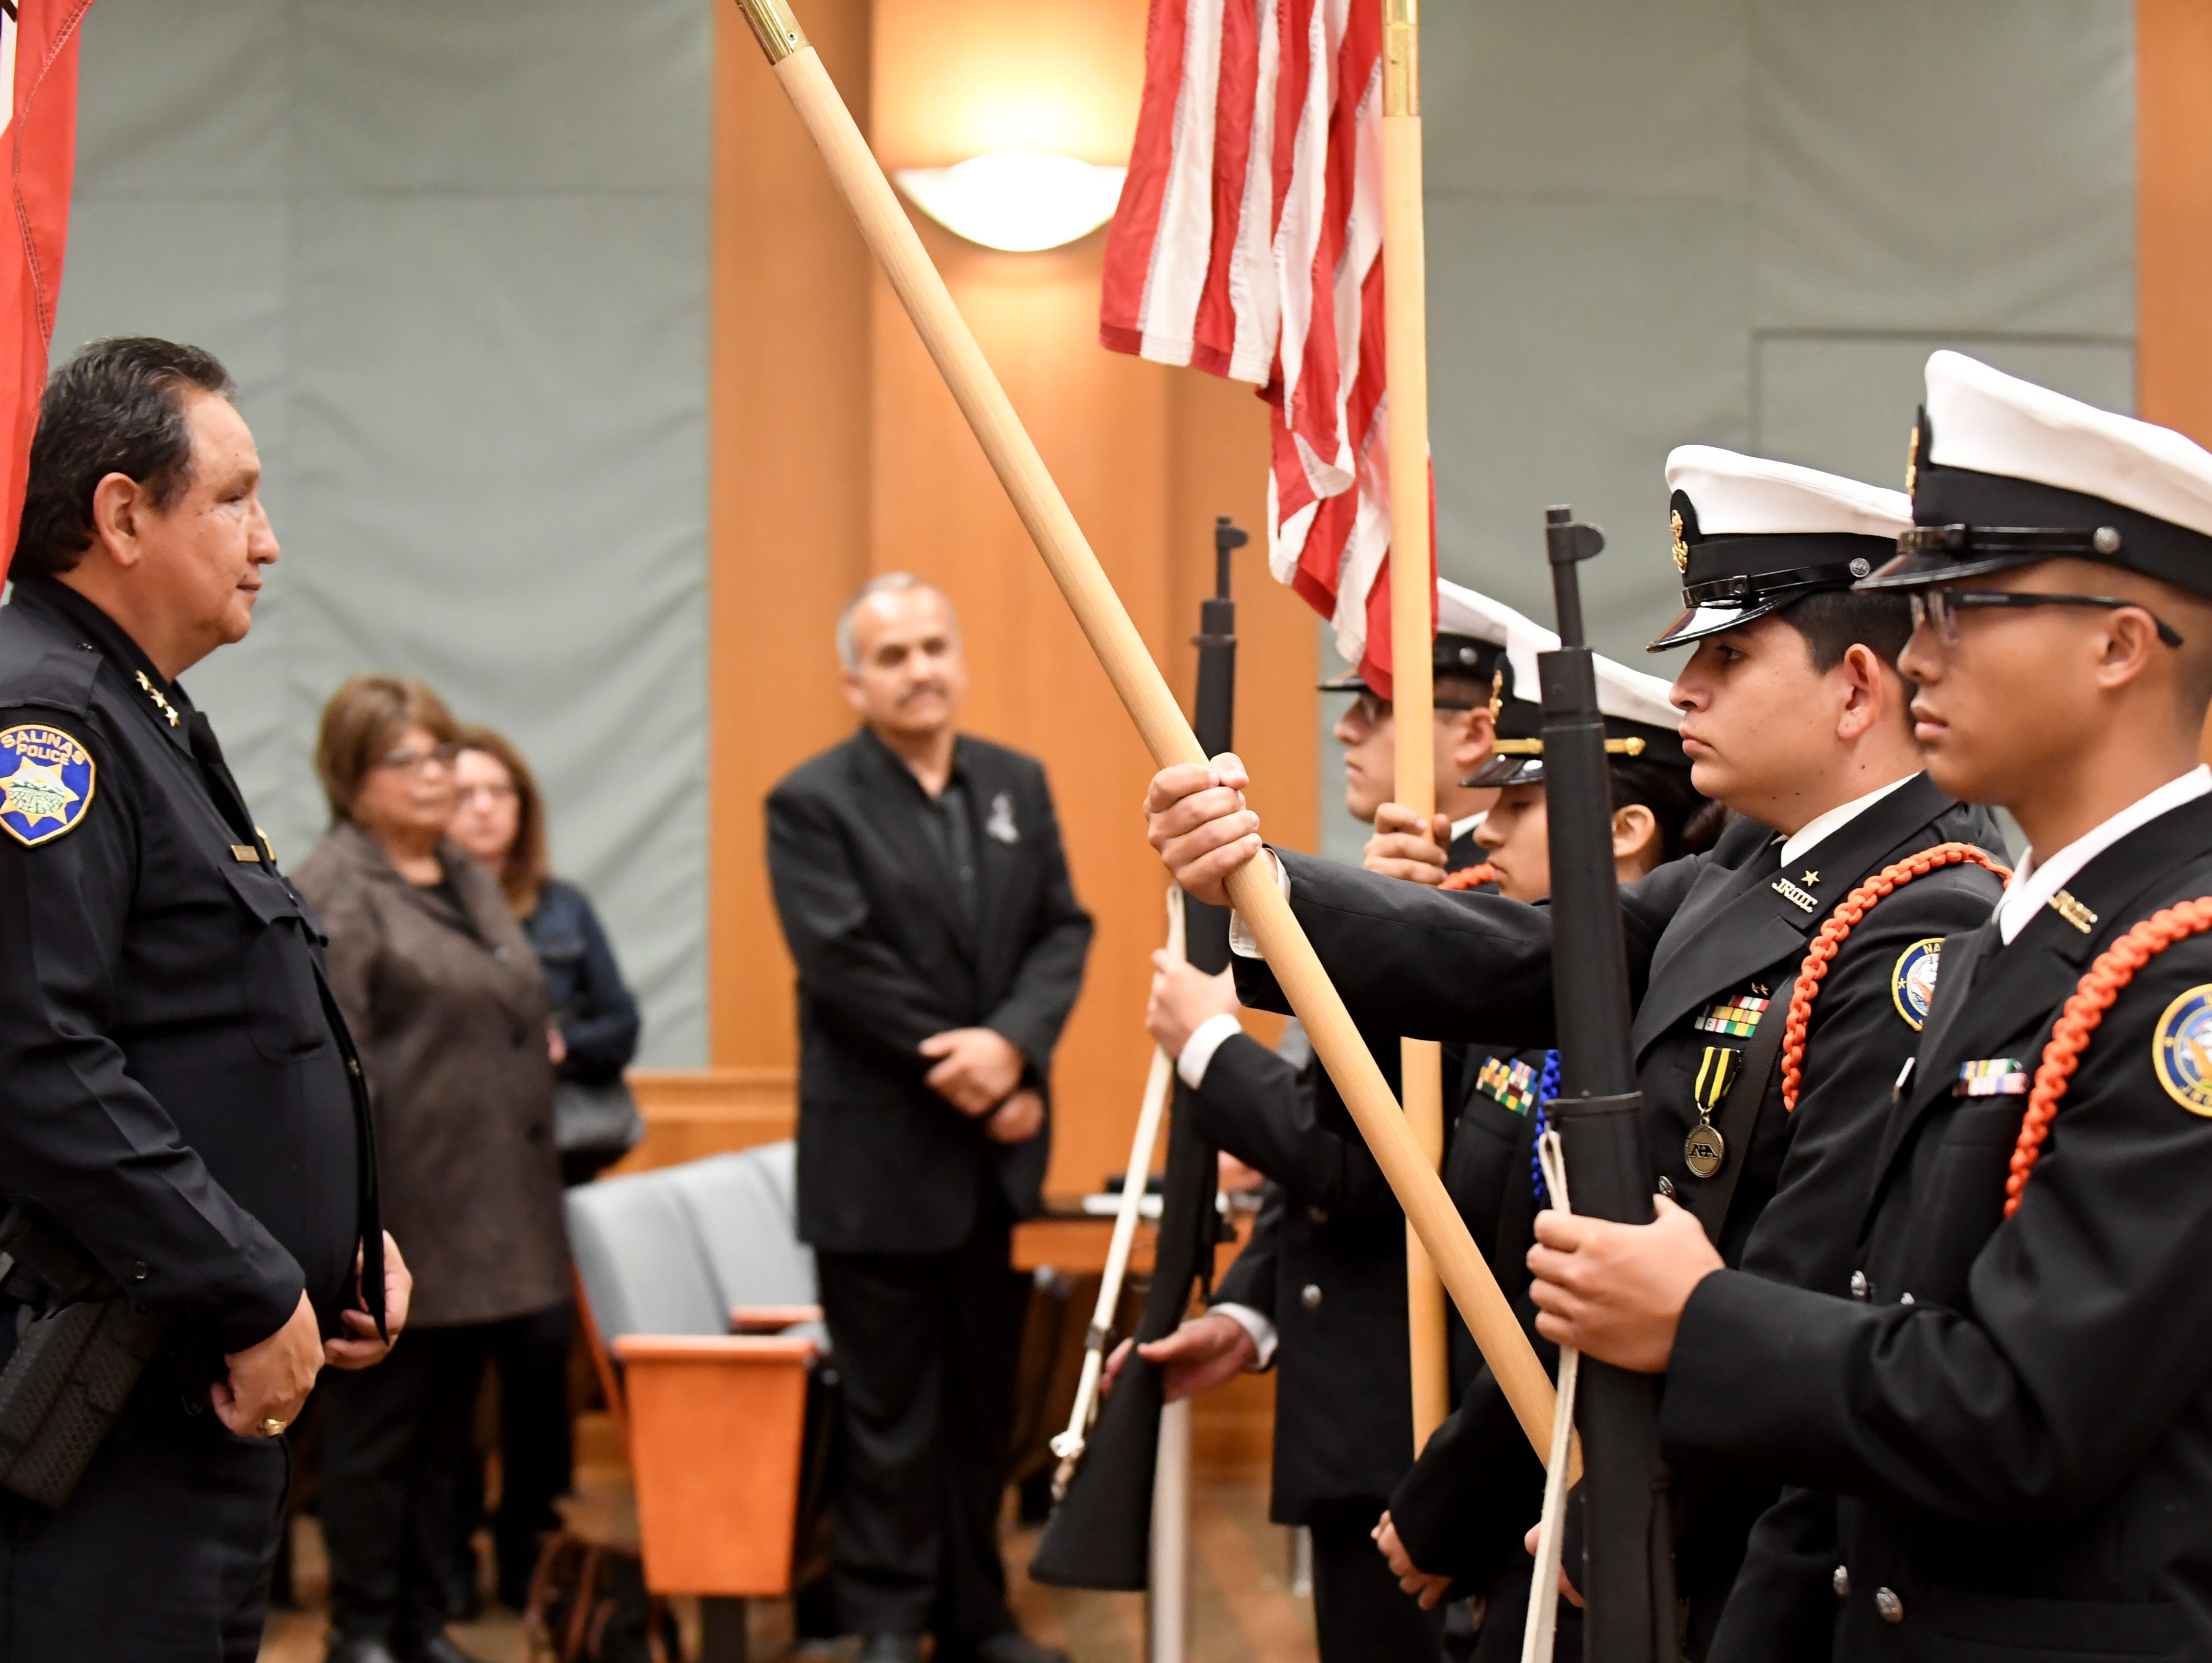 Members of the Everett Alvarez High School's Navy Junior Reserve Officer Training Core program help open the National Day of Remembrance for Murder Victims ceremony.